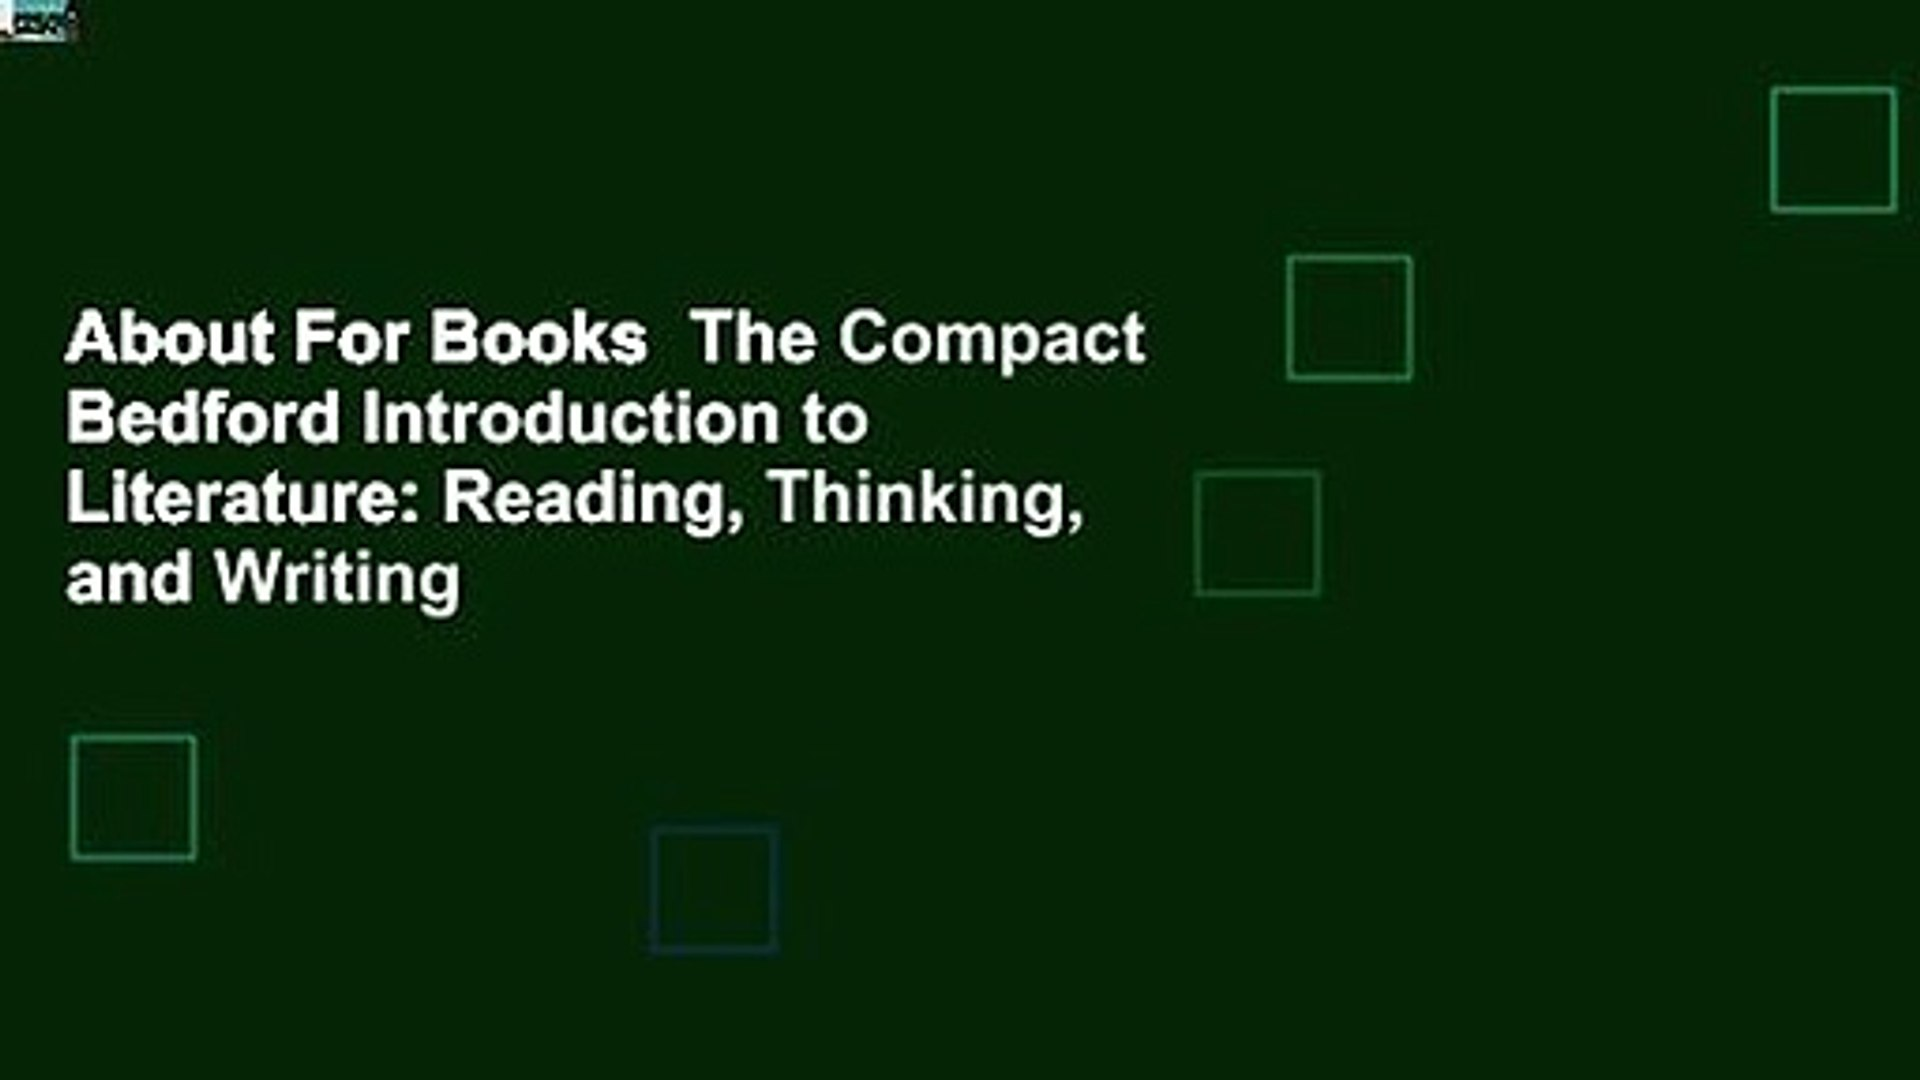 About For Books  The Compact Bedford Introduction to Literature: Reading, Thinking, and Writing